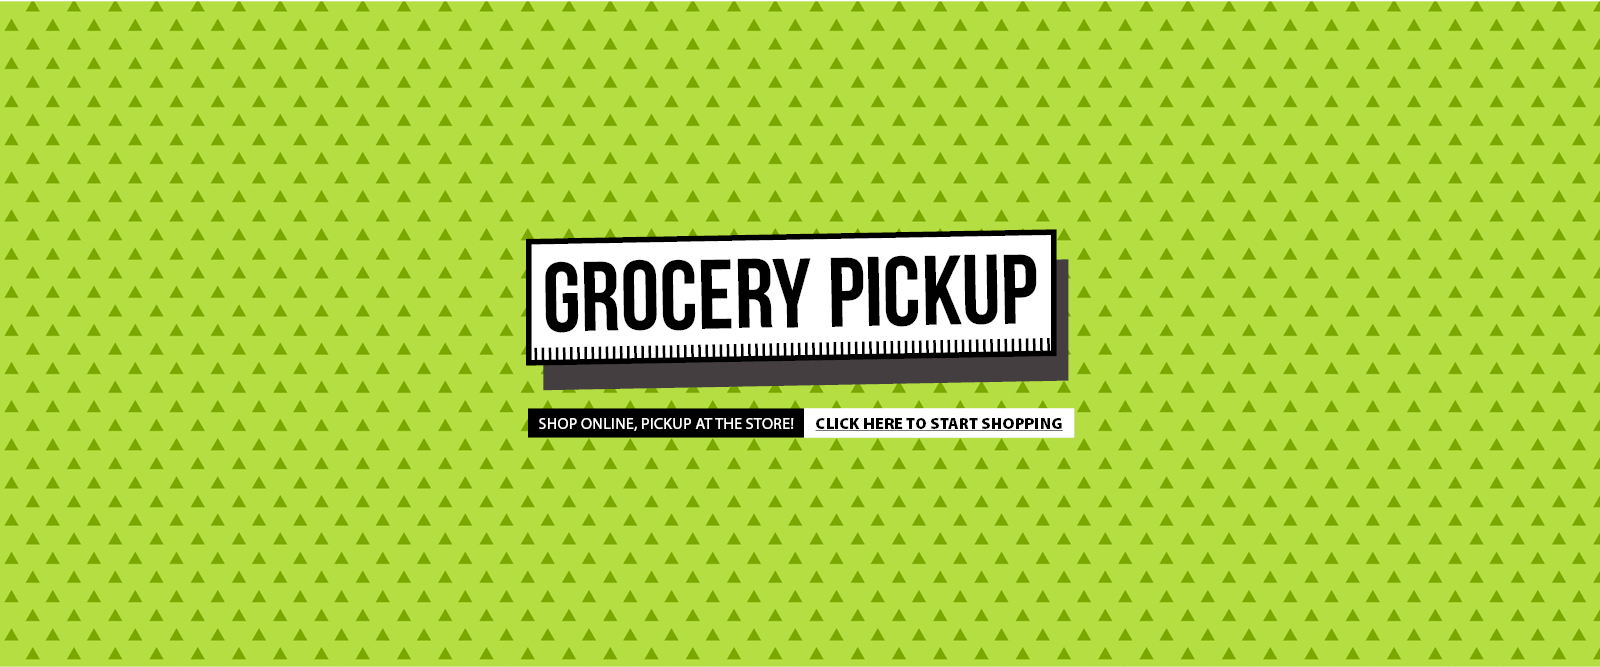 Grocery Pickup: Shop online, pickup at the store! Start shopping today!